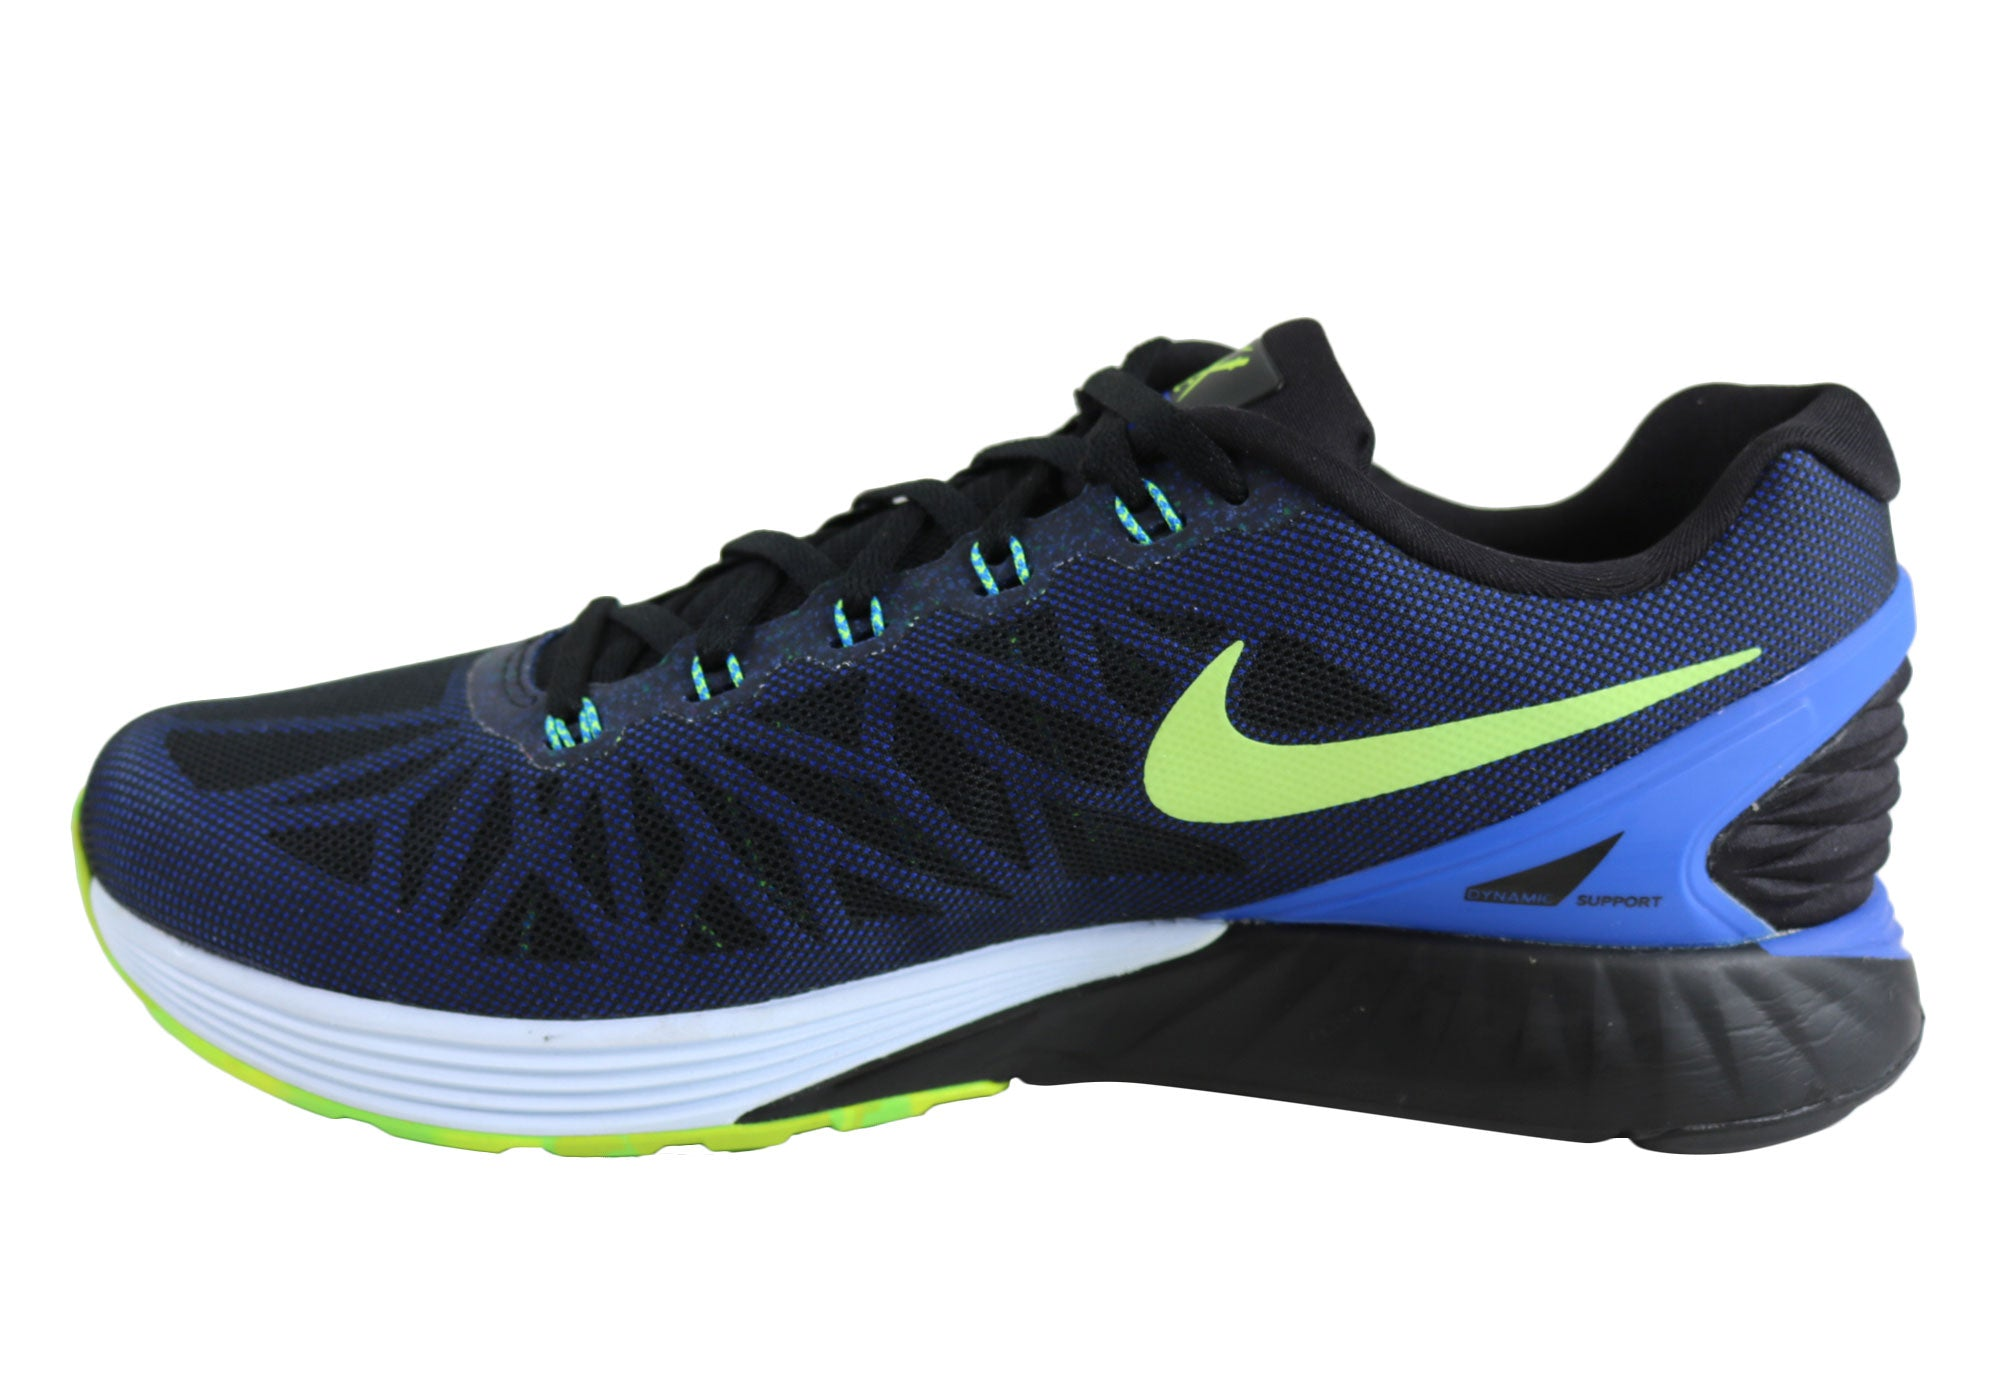 9507650e01d11 NEW NIKE LUNARGLIDE 6 MENS RUNNING CUSHIONED SPORT SHOES